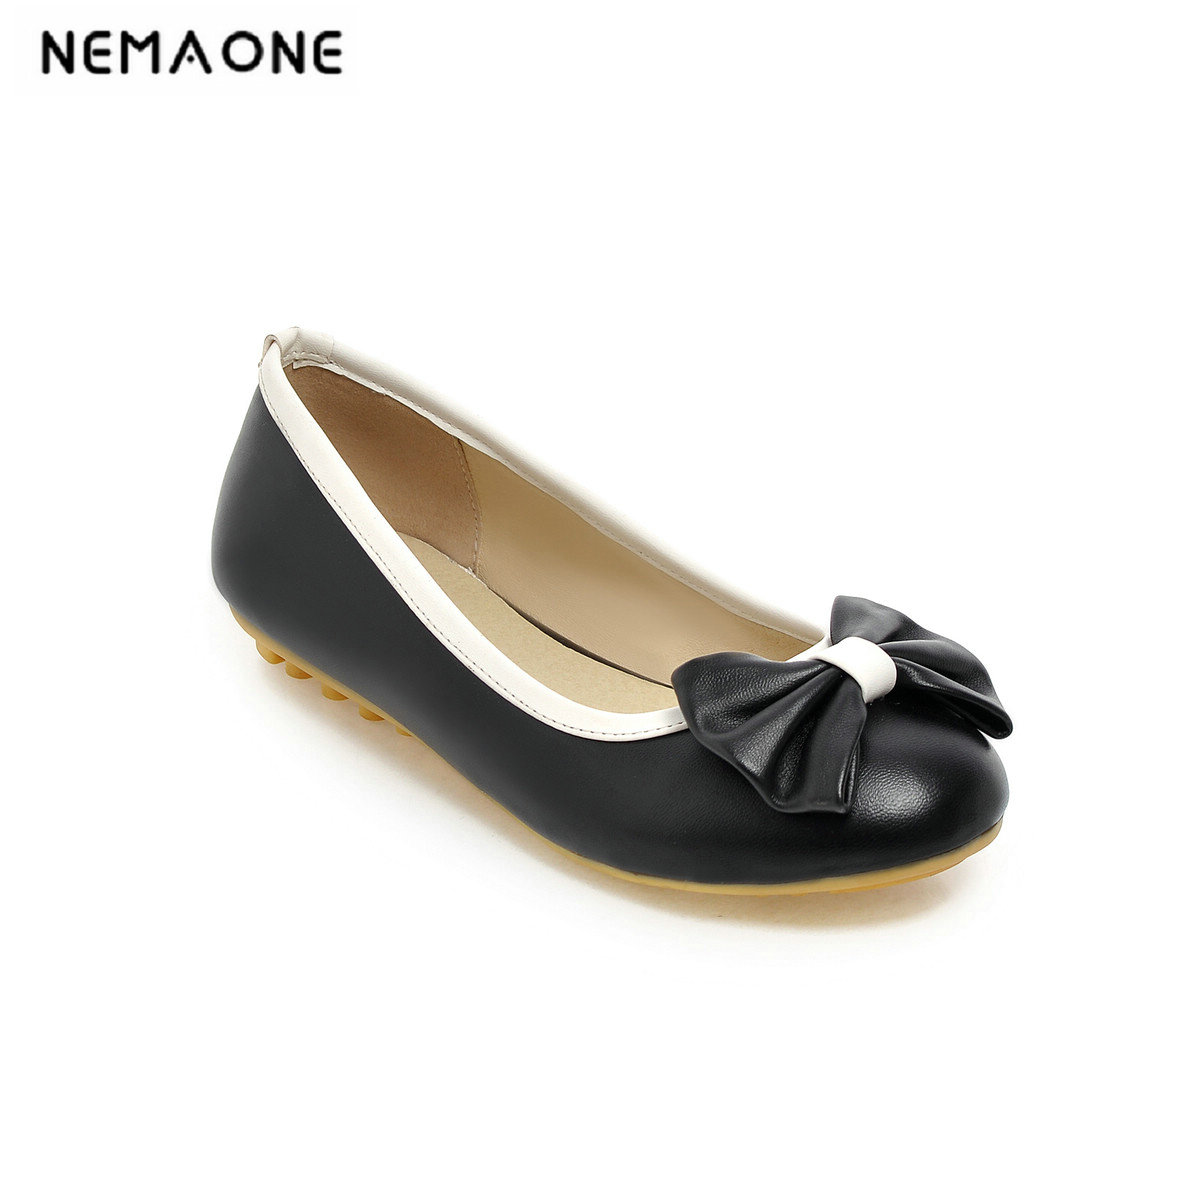 2019 New Spring New Fashion Women Flat Shoes Patent Leather Casual Buckle Round Toe Boat Shoes For Office Ladies